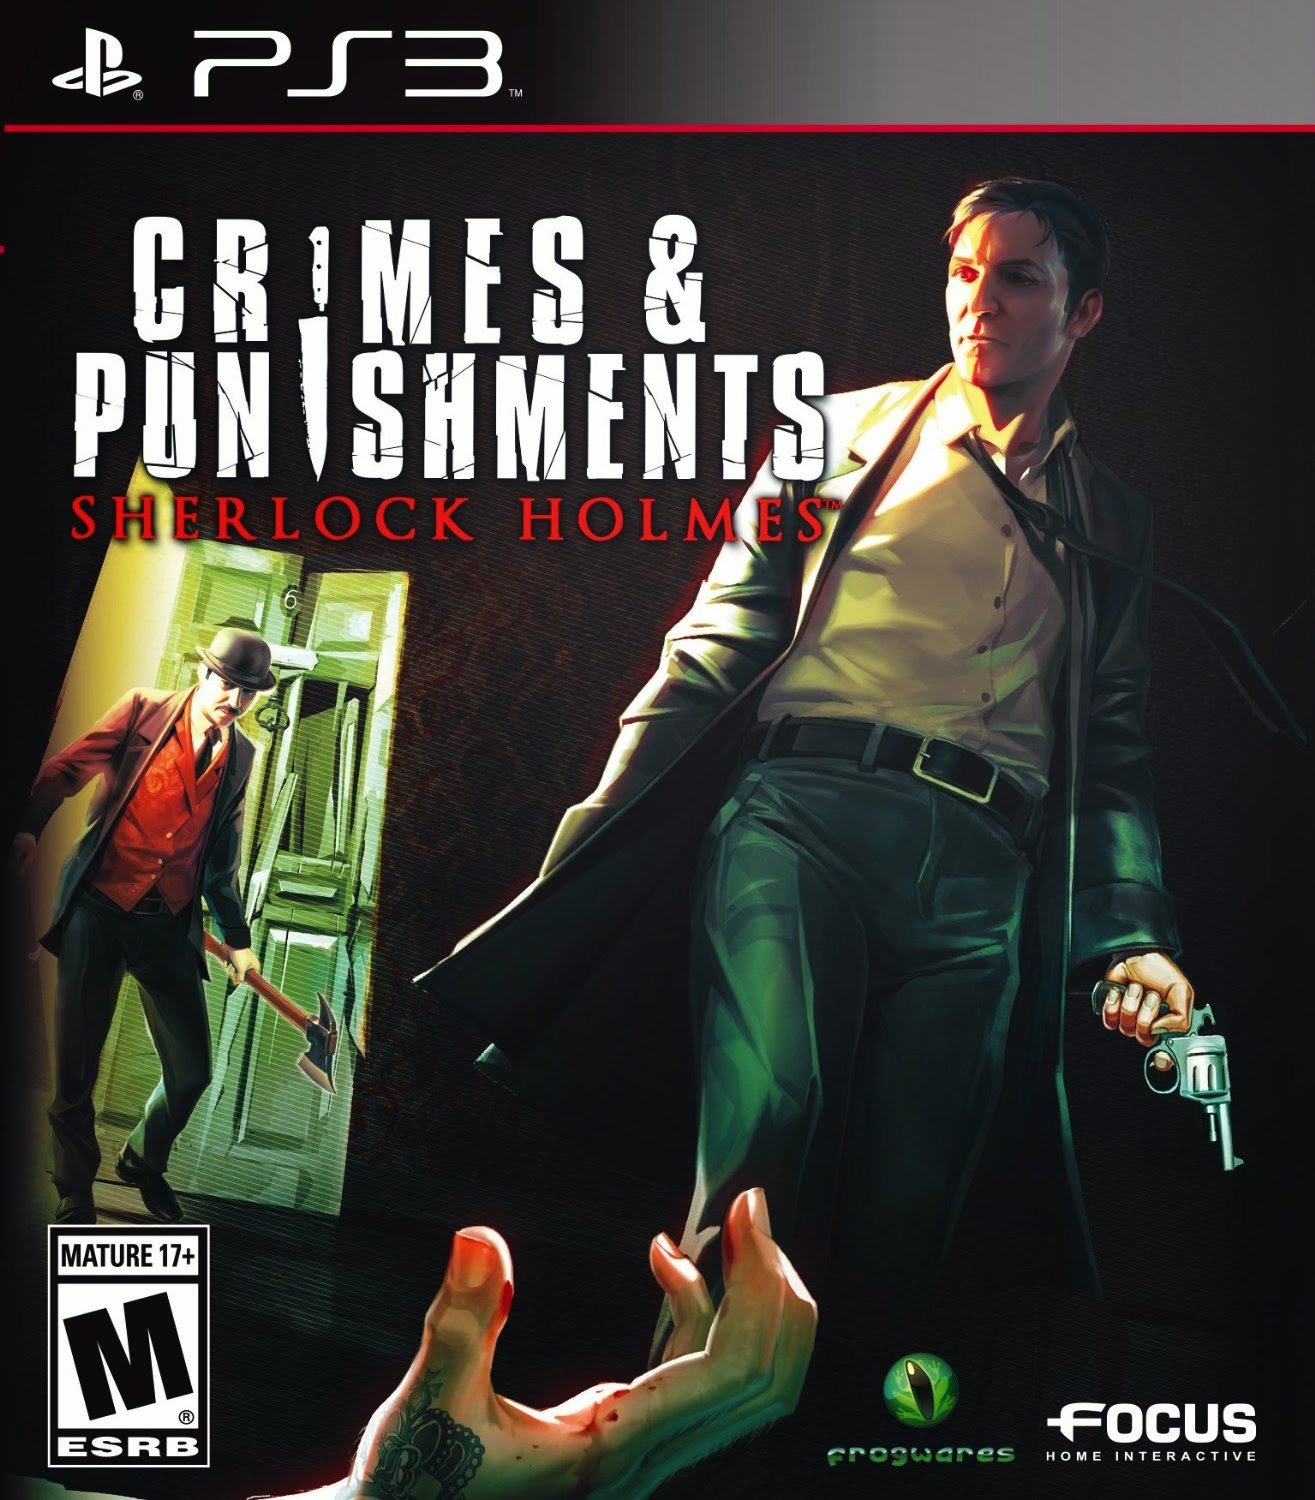 Juegos confirmados PlayStation Plus Marzo 2015 - Sherlock Holmes: Crimes and Punishments,  CounterSpy y muchos más